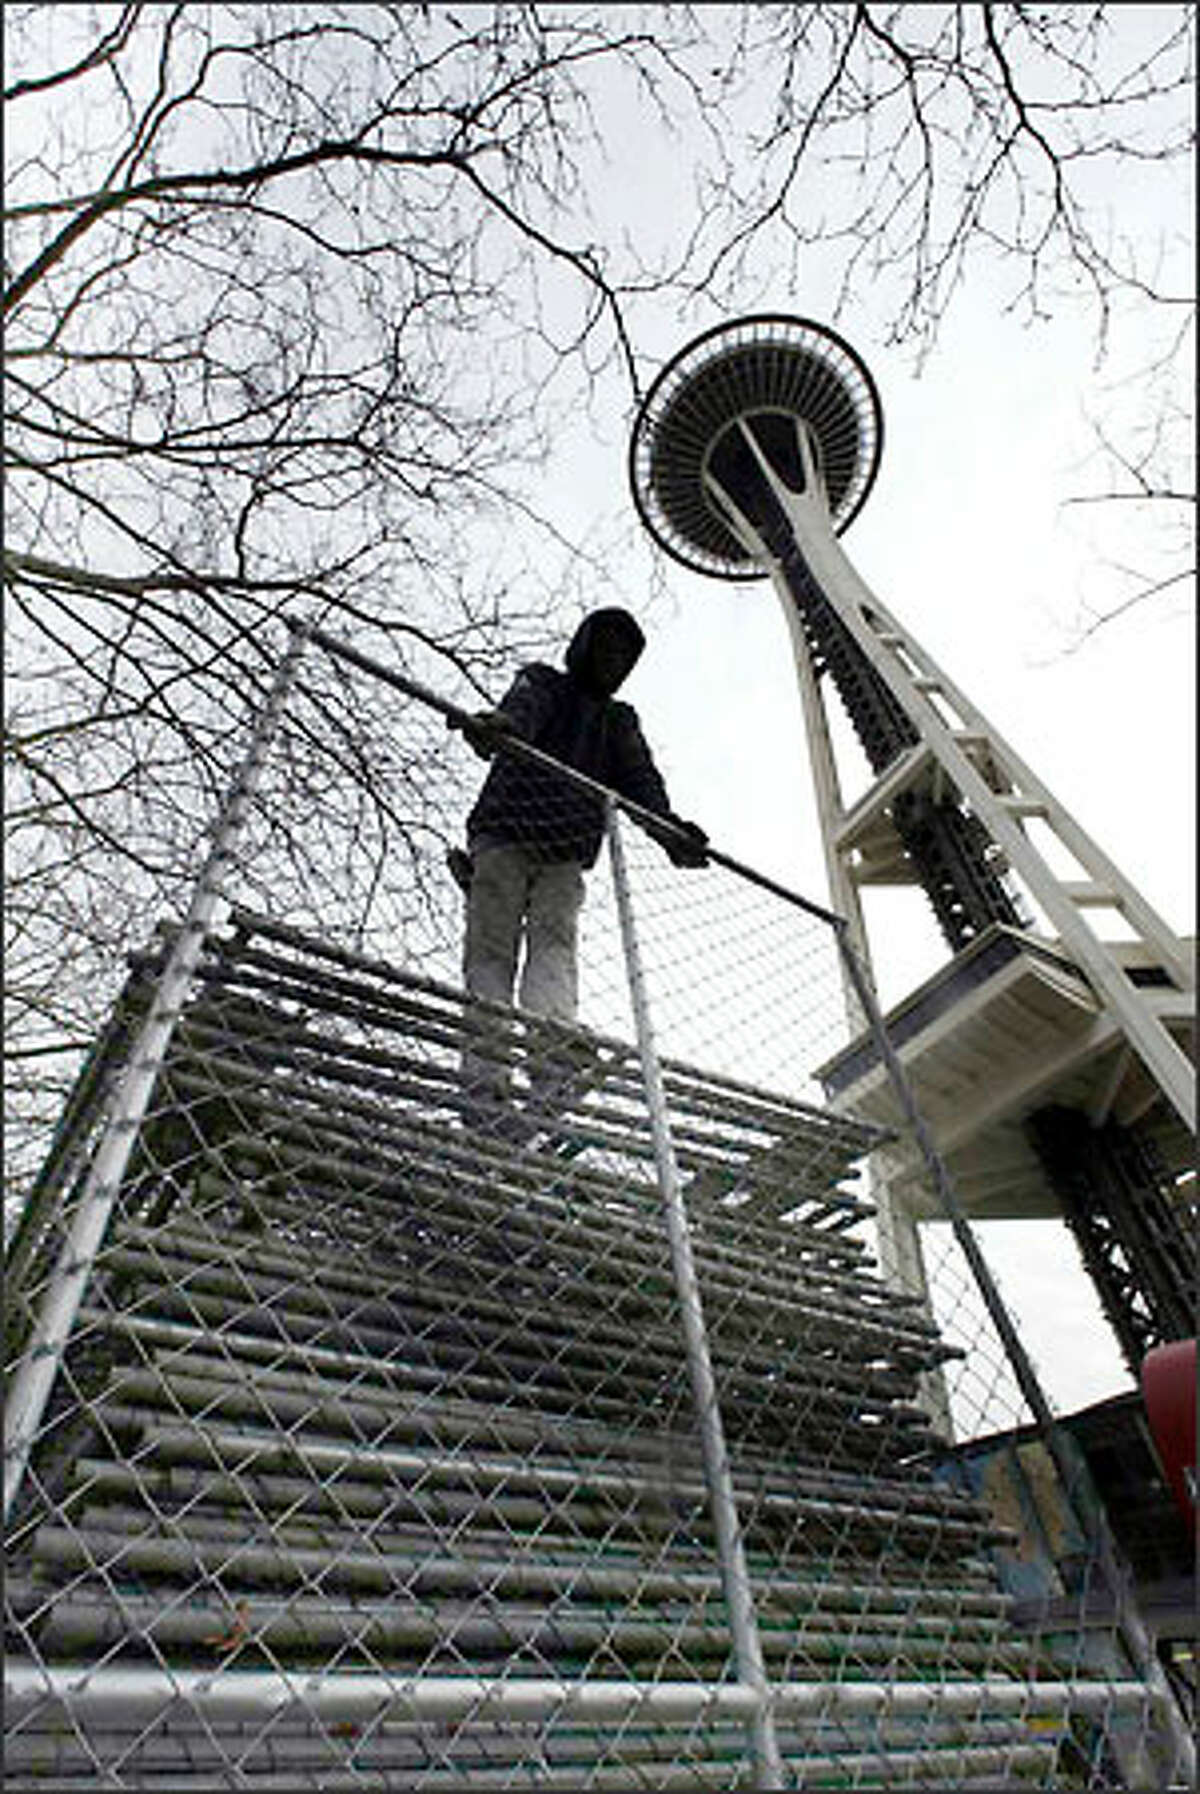 Victaly Soloneko from National Rent-a-Fence unloads sections of chain link that will form a security fence line around the Space Needle for New Year's Eve.